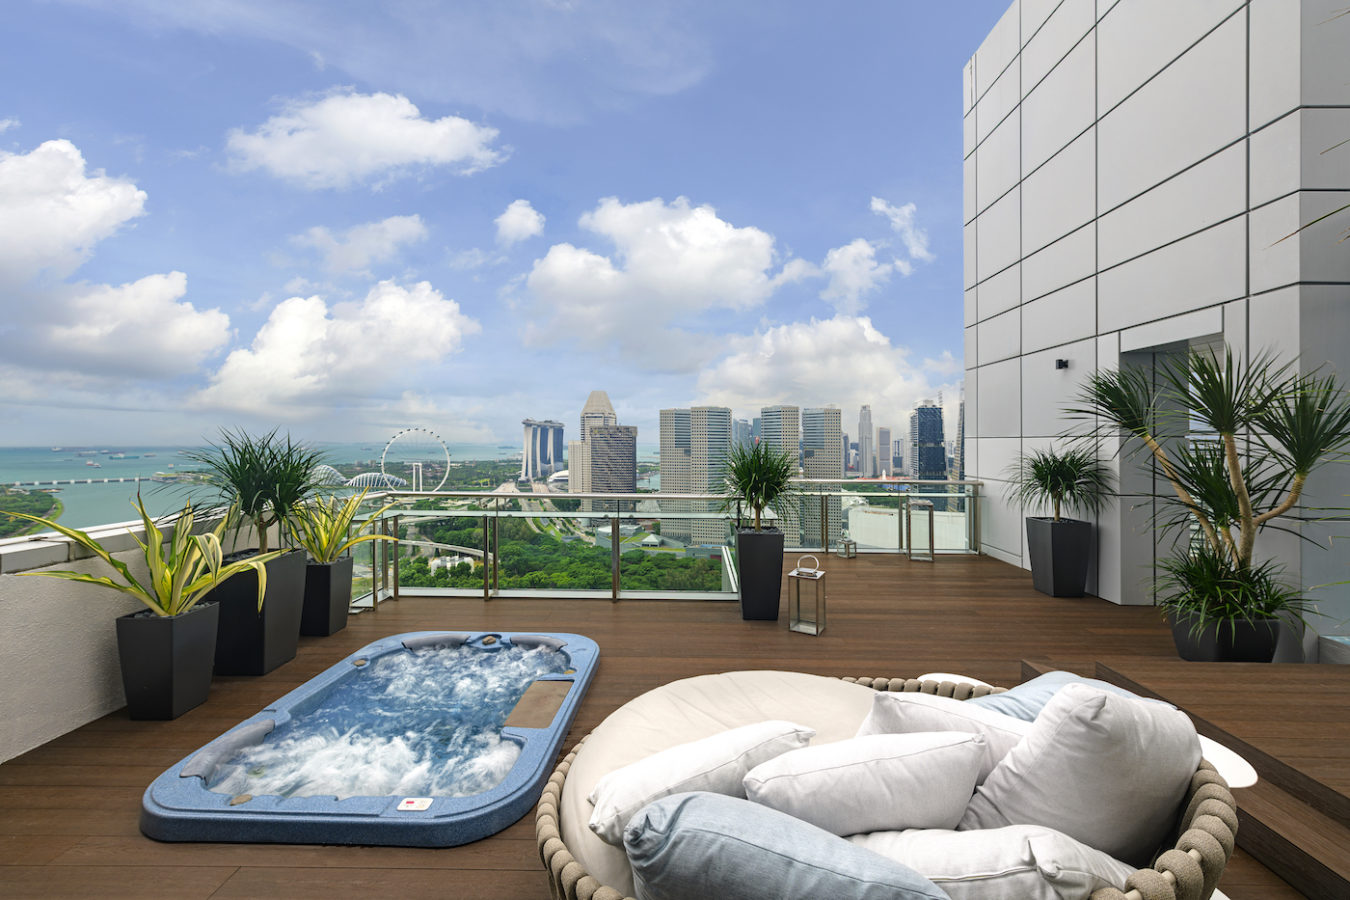 Discover 4 of the Most Impressive Luxury Penthouses Around the World